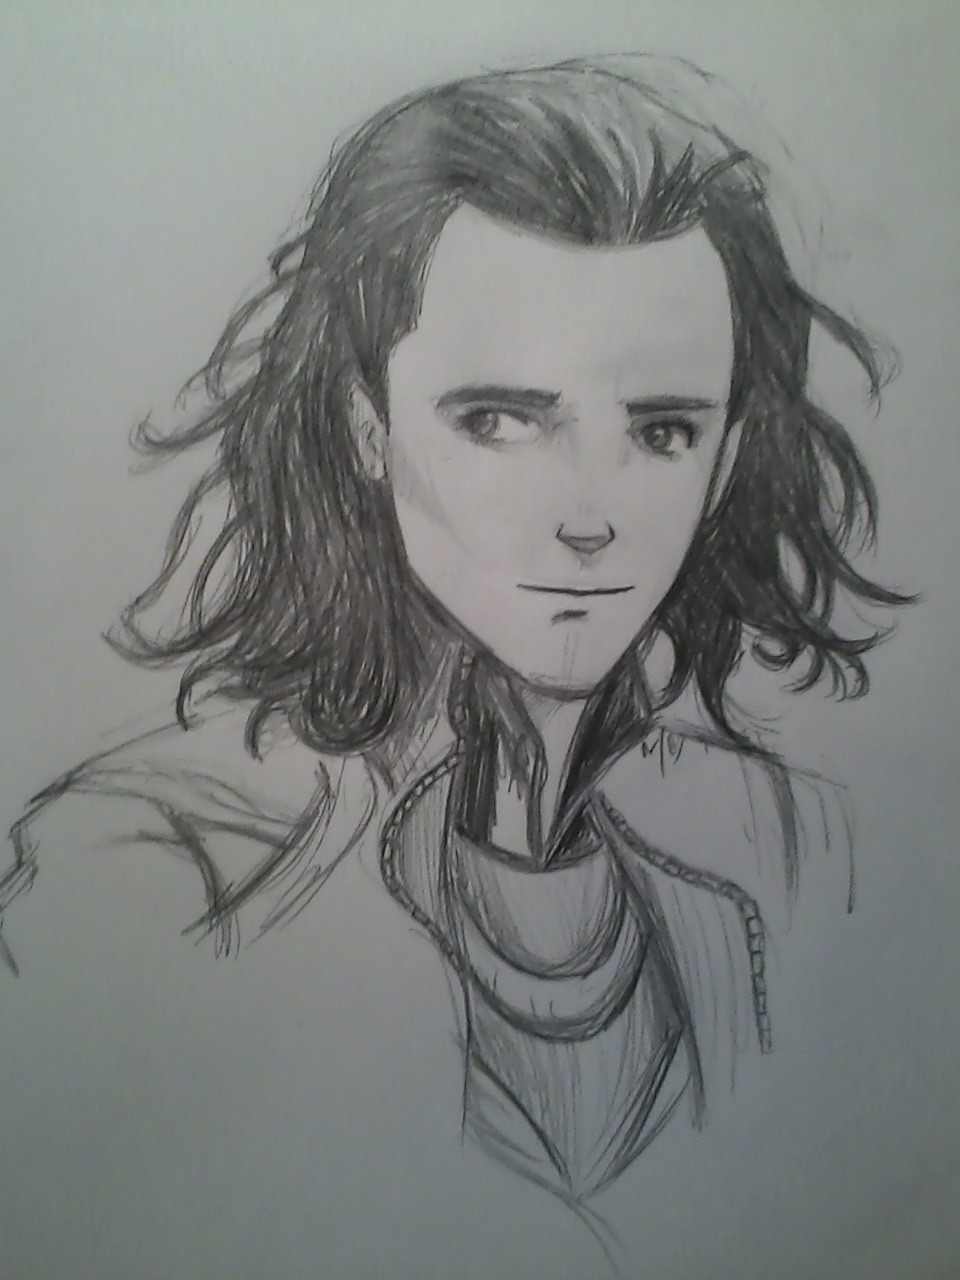 Loki re-uploaded by ElvishLoki